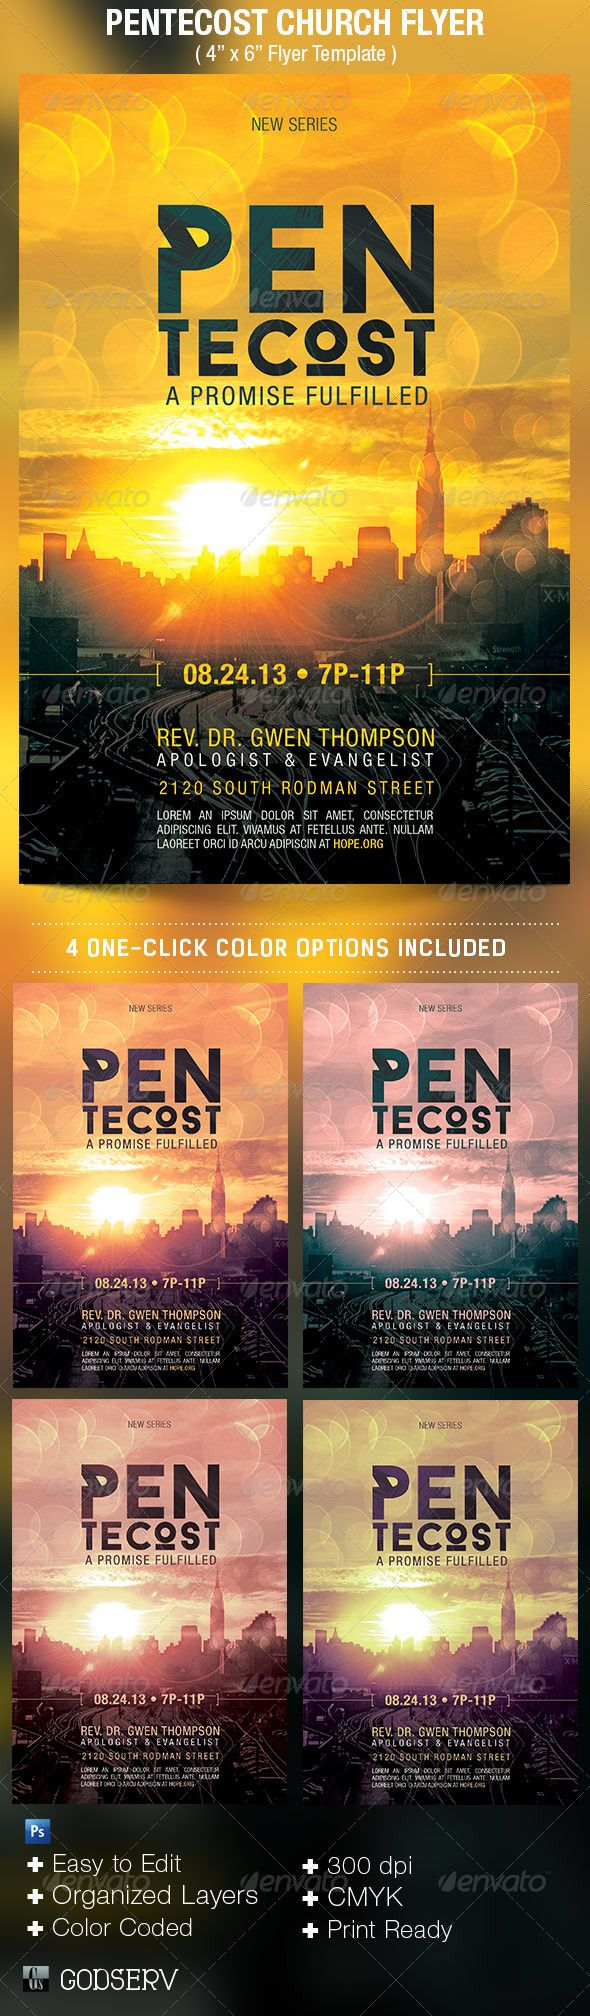 pentecost church flyer template fontes igreja e estudos bíblicos pentecost church flyer template photoshop psd convention modern available here →